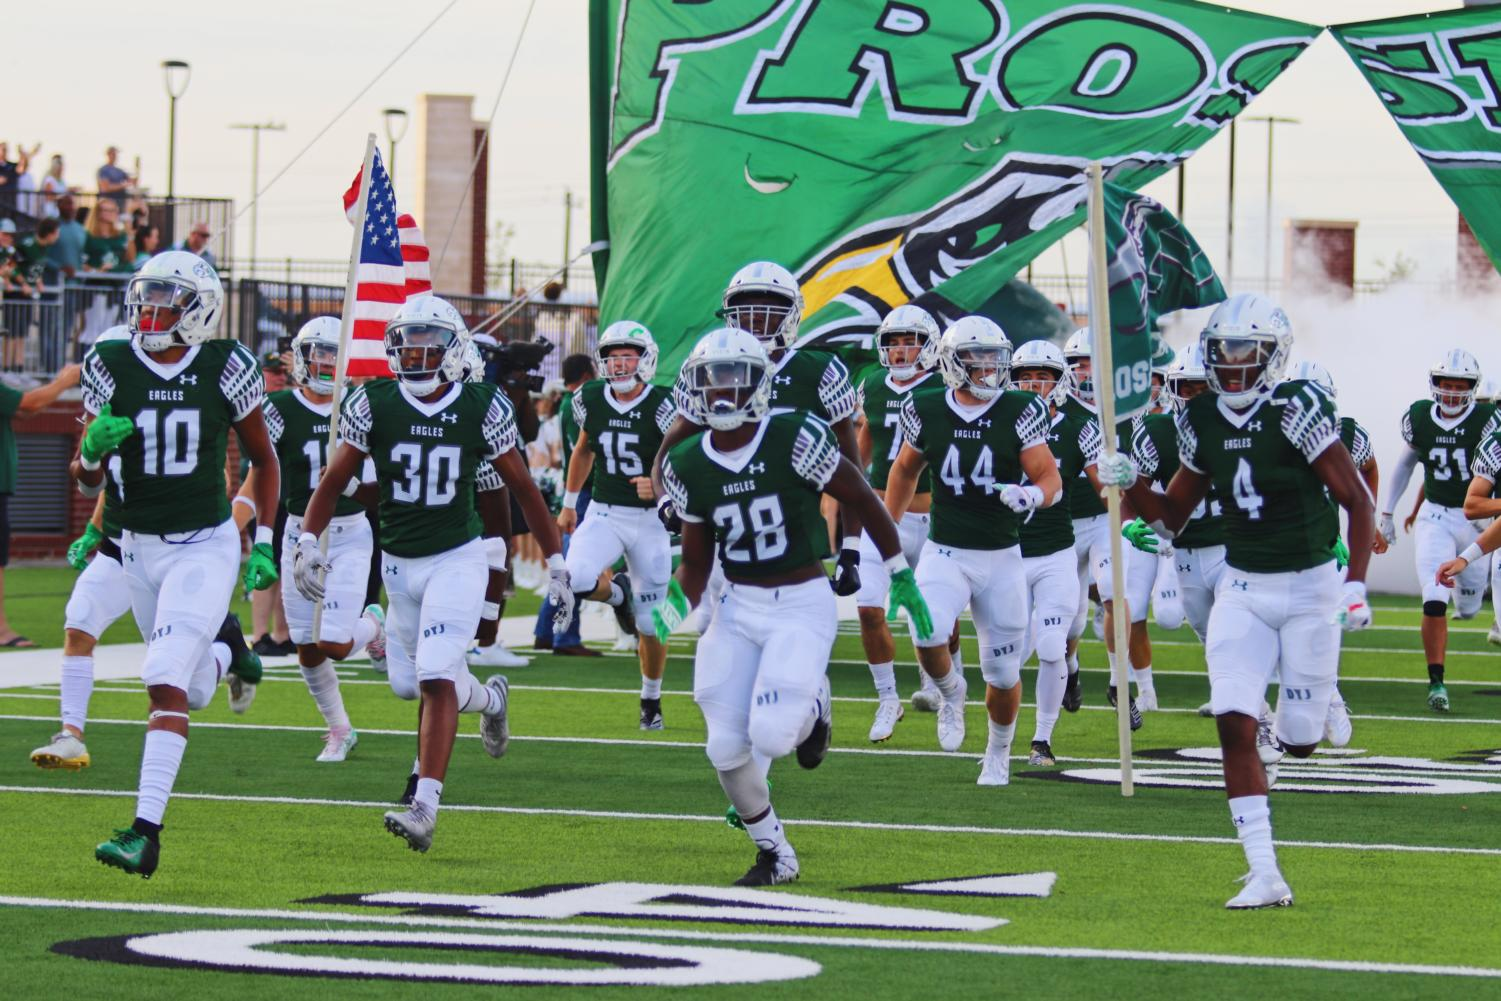 Players+break+through+the+football+banner+prior+to+kick+off.+Prosper+faced+Rowlett+in+the+home-opener.+They+came+up+with+a+win+31-7.